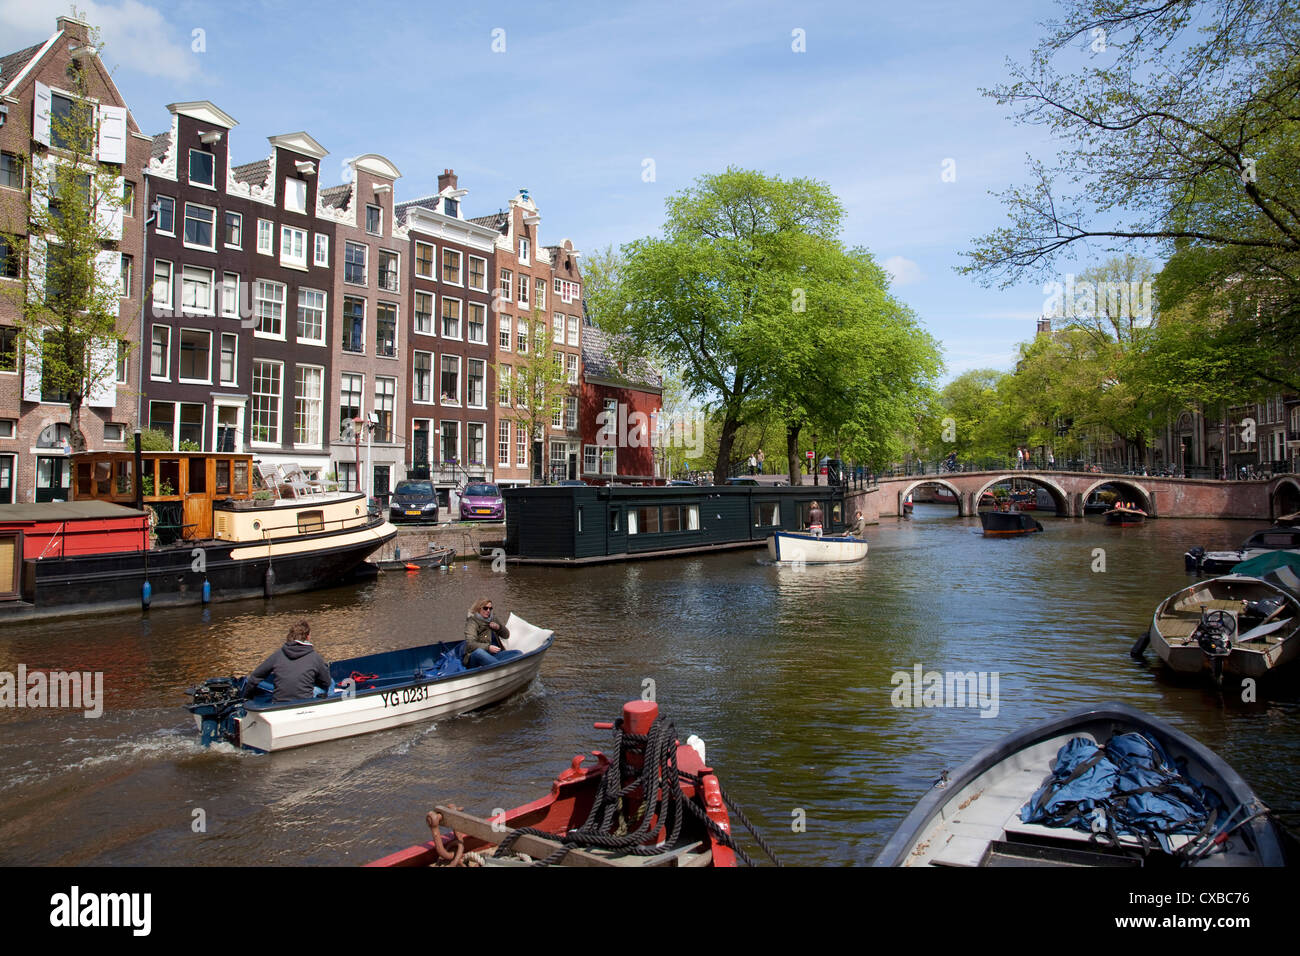 Canal and boats, Amsterdam, Holland, Europe - Stock Image